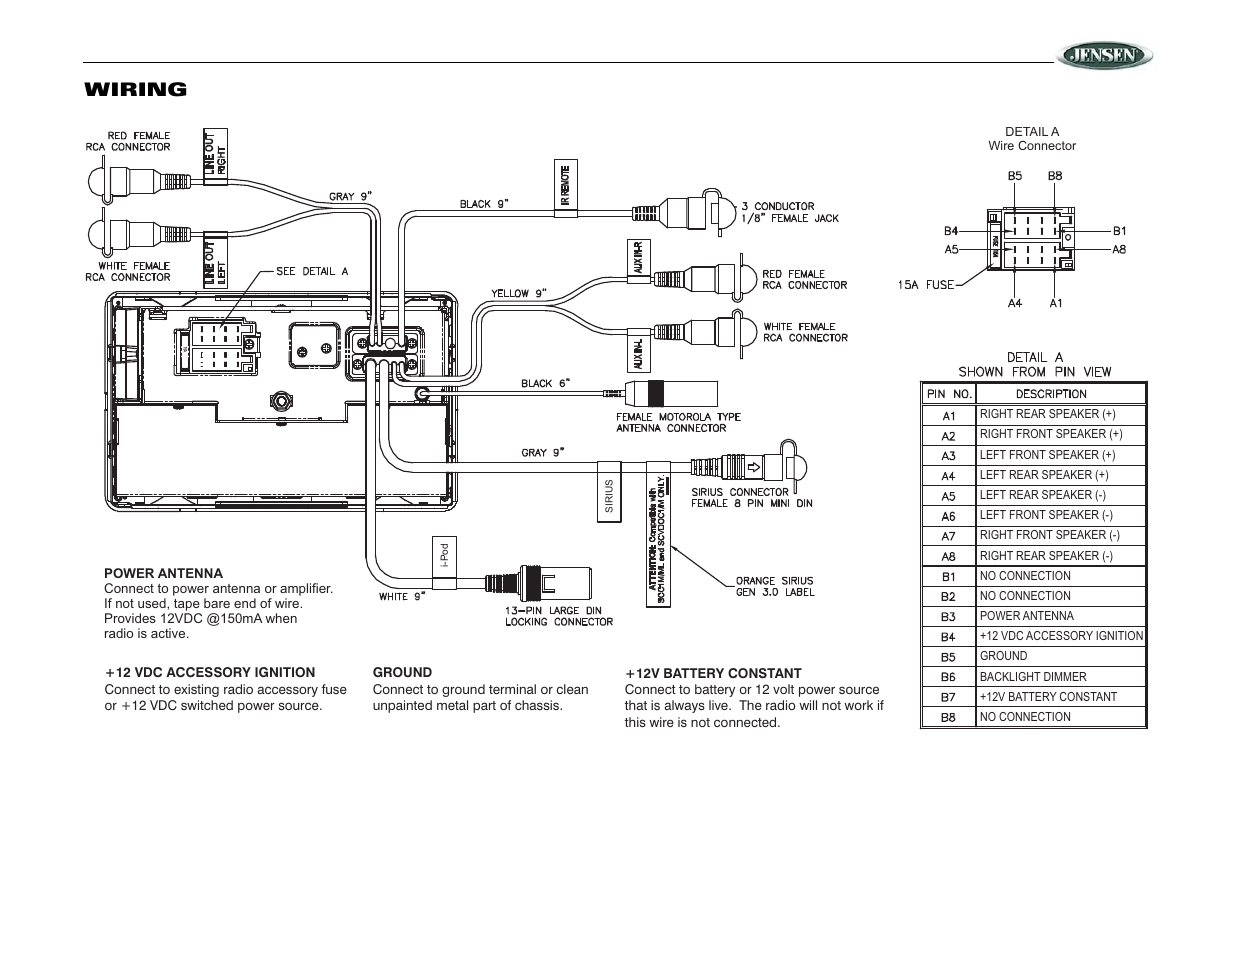 Wiring Diagram  33 Jensen Wiring Harness Diagram